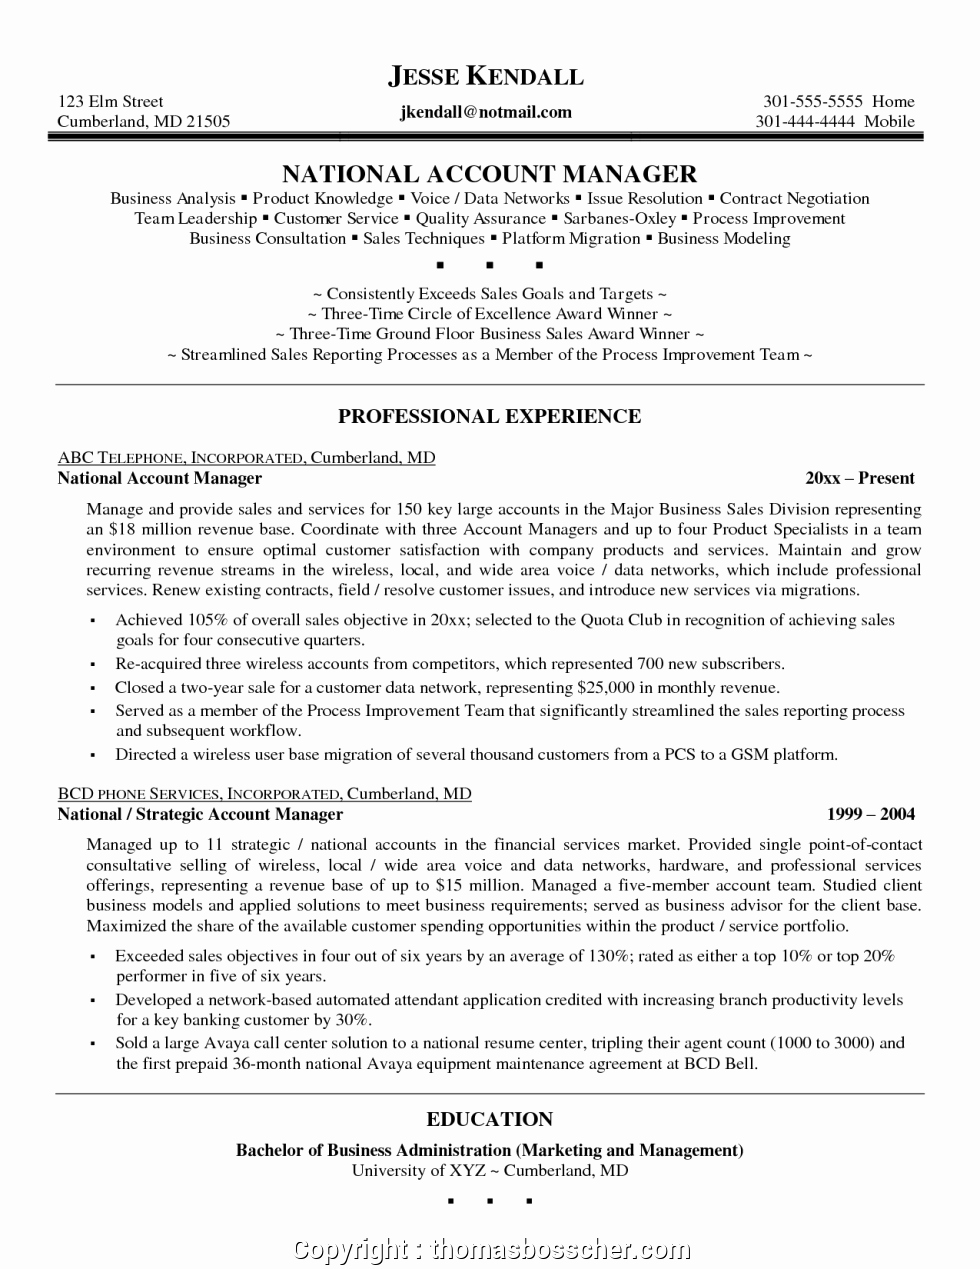 Key Account Manager Resume New Print National Account Manager Resume Objective Resumes